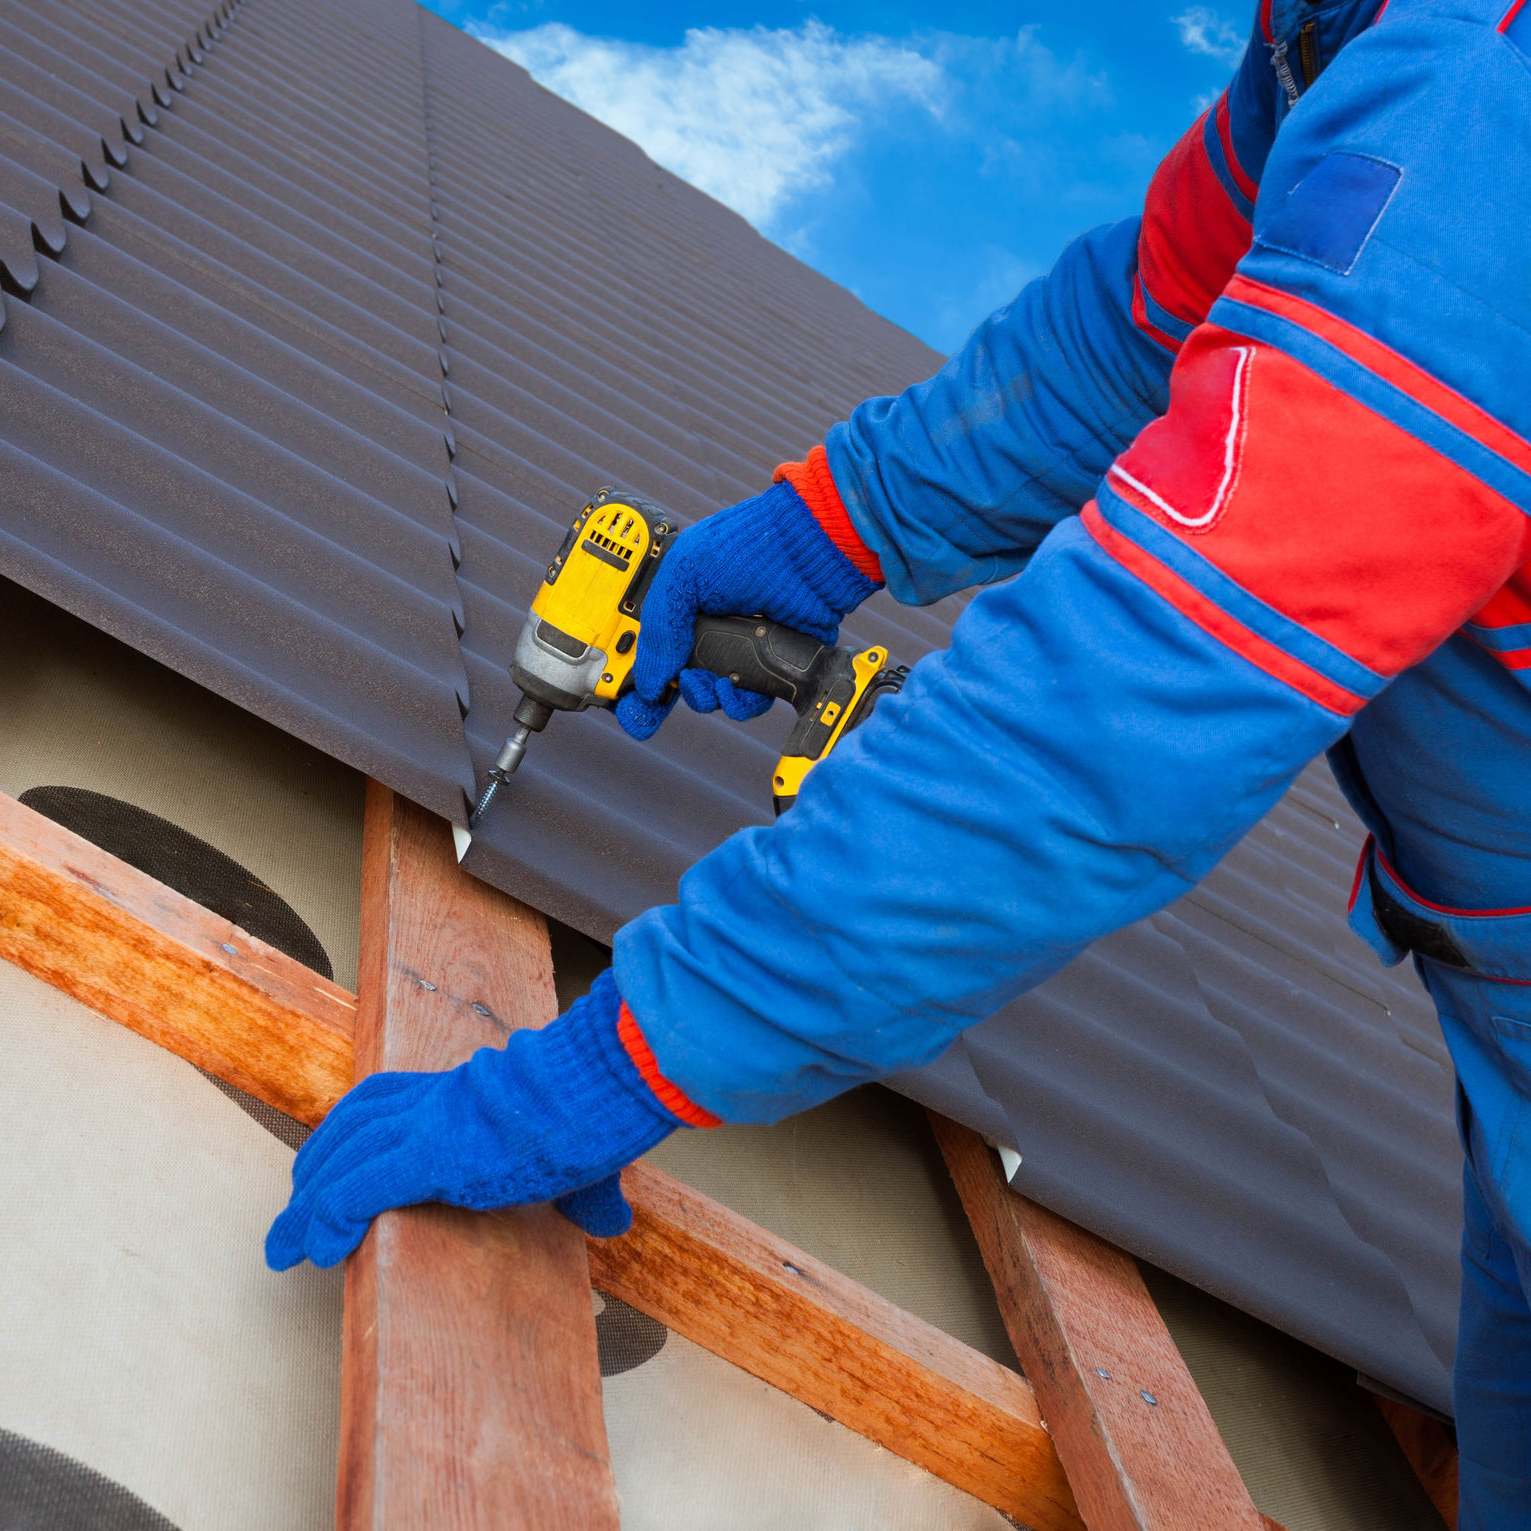 A roofer installing a metal roof